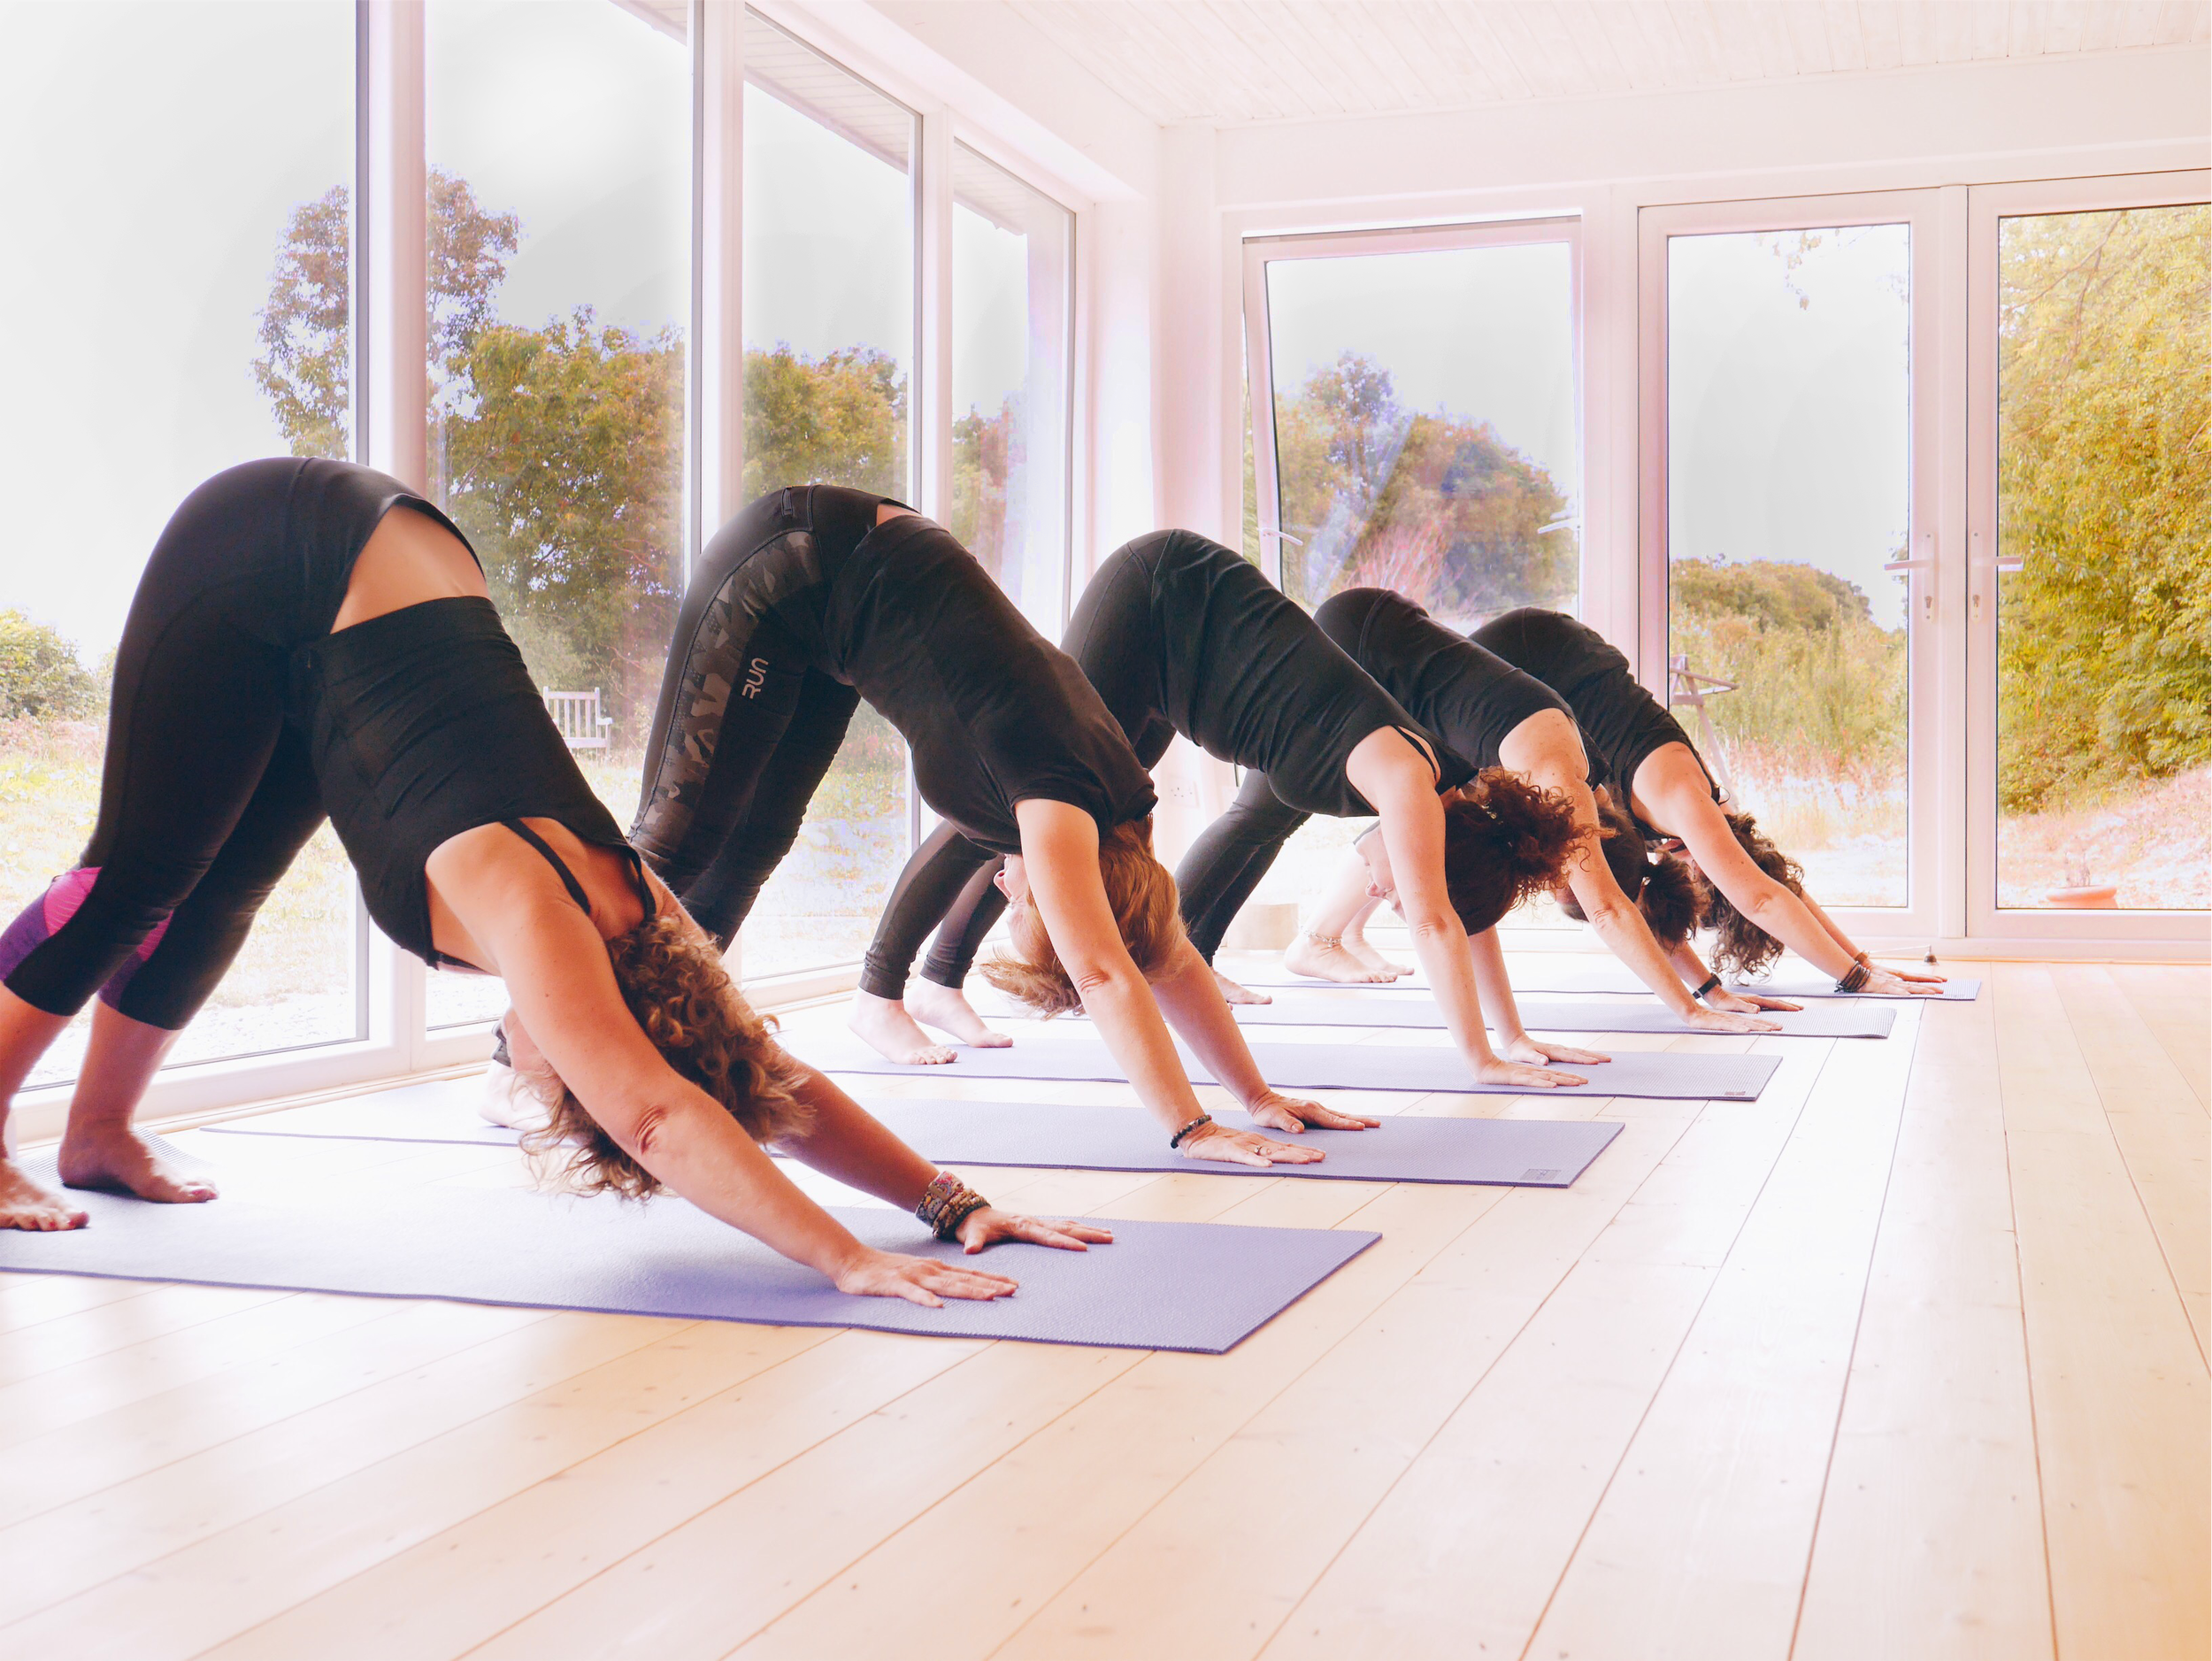 Aryna Yoga Weekly Classes for Beginners through to Advanced here in the Studio in Rathcoffey Maynooth